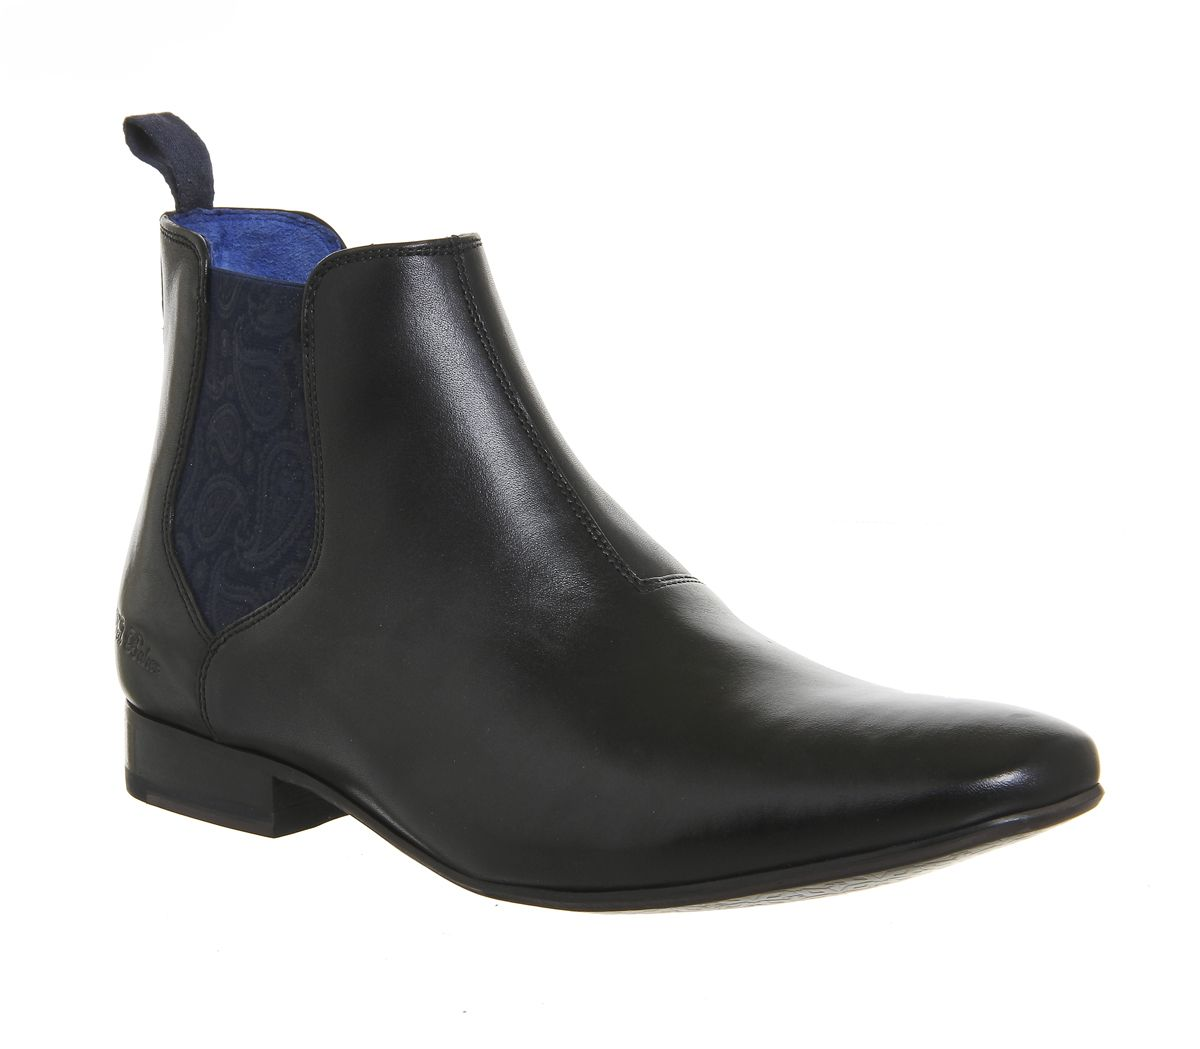 b3798e6c8ca0 Ted Baker Hourb 2 Chelsea Boots Black Leather - Boots